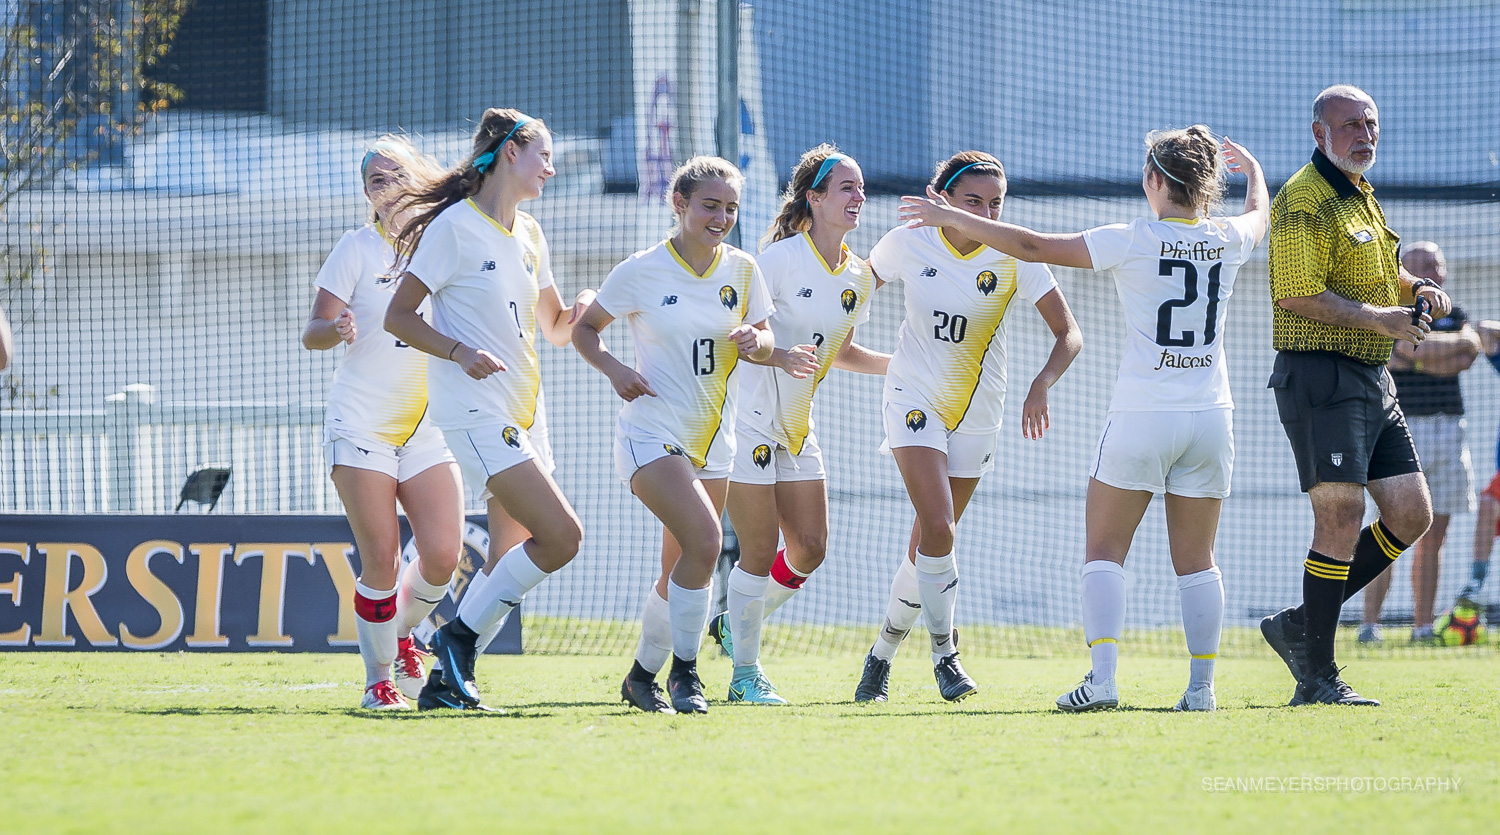 Women's Soccer Records 240th Win in Program History in 3-1 Victory at Methodist